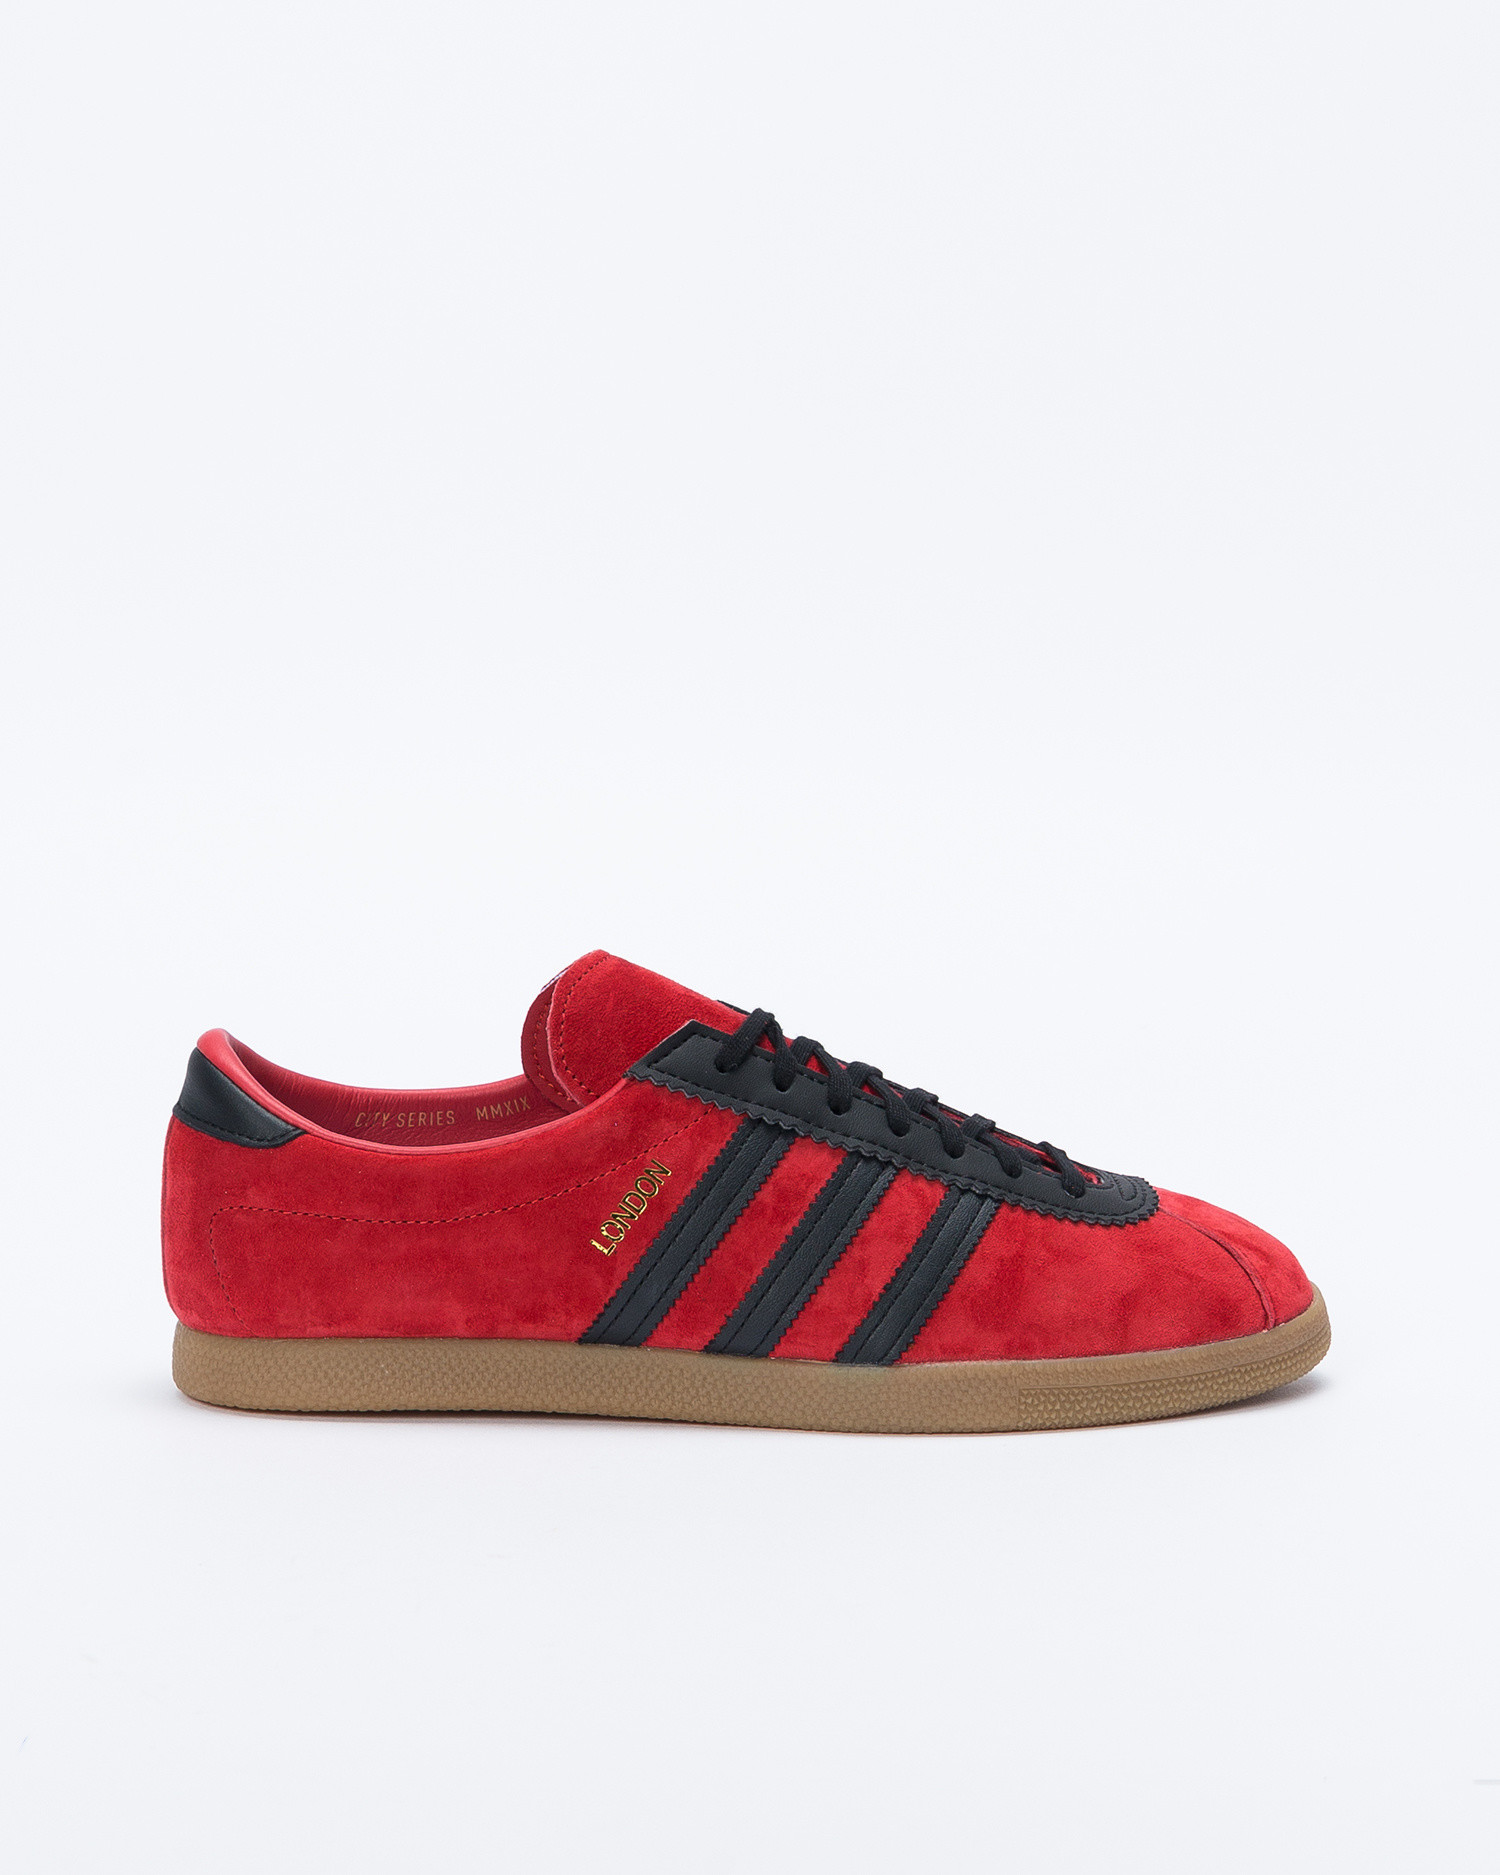 Adidas London Scarle/Cblack/Goldmt